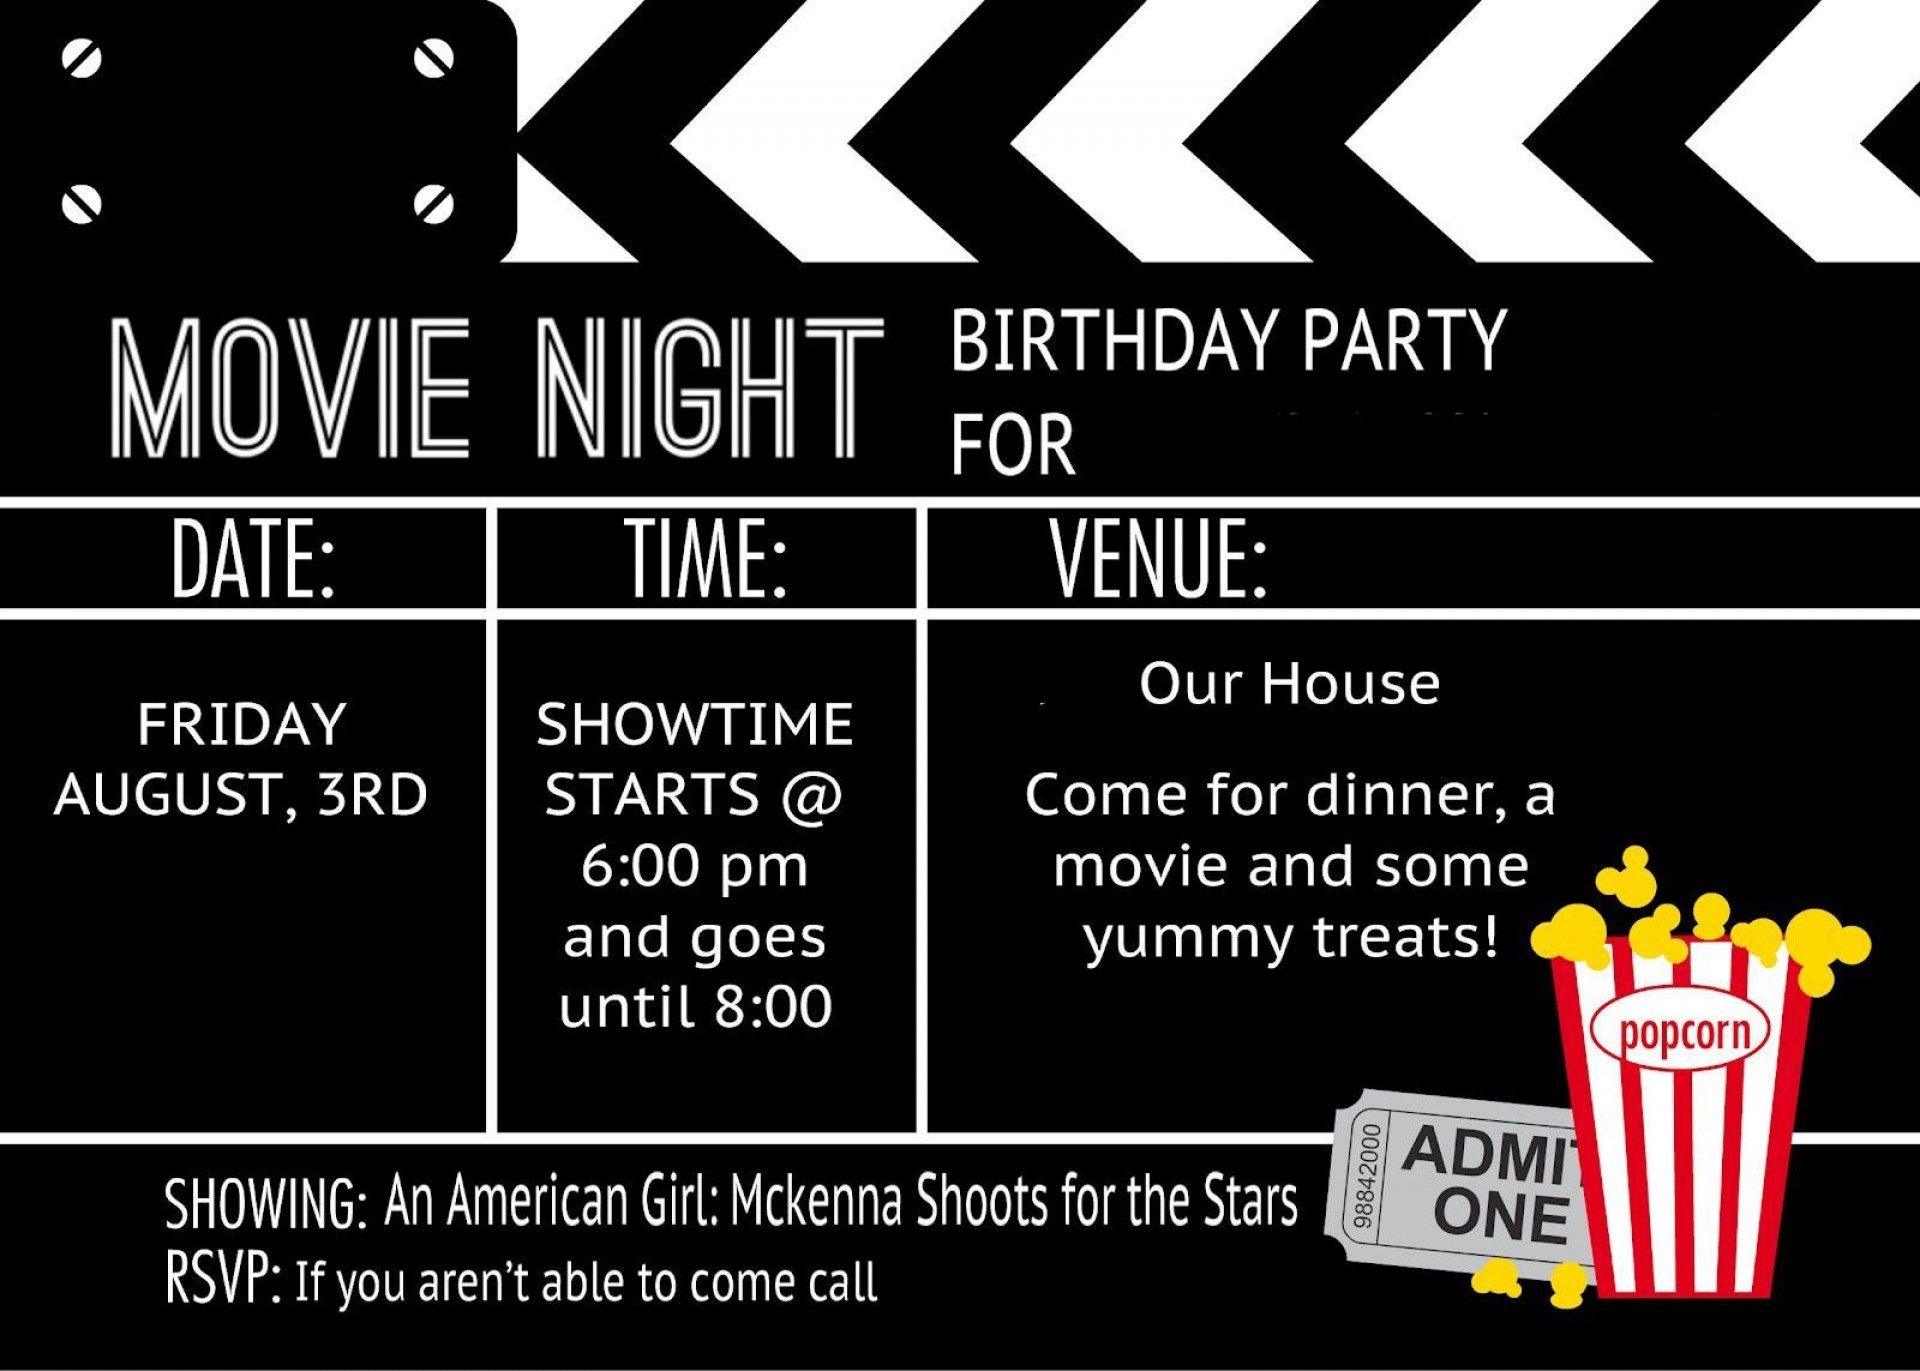 006 Impressive Free Printable Movie Ticket Birthday Party Invitation Picture 1920